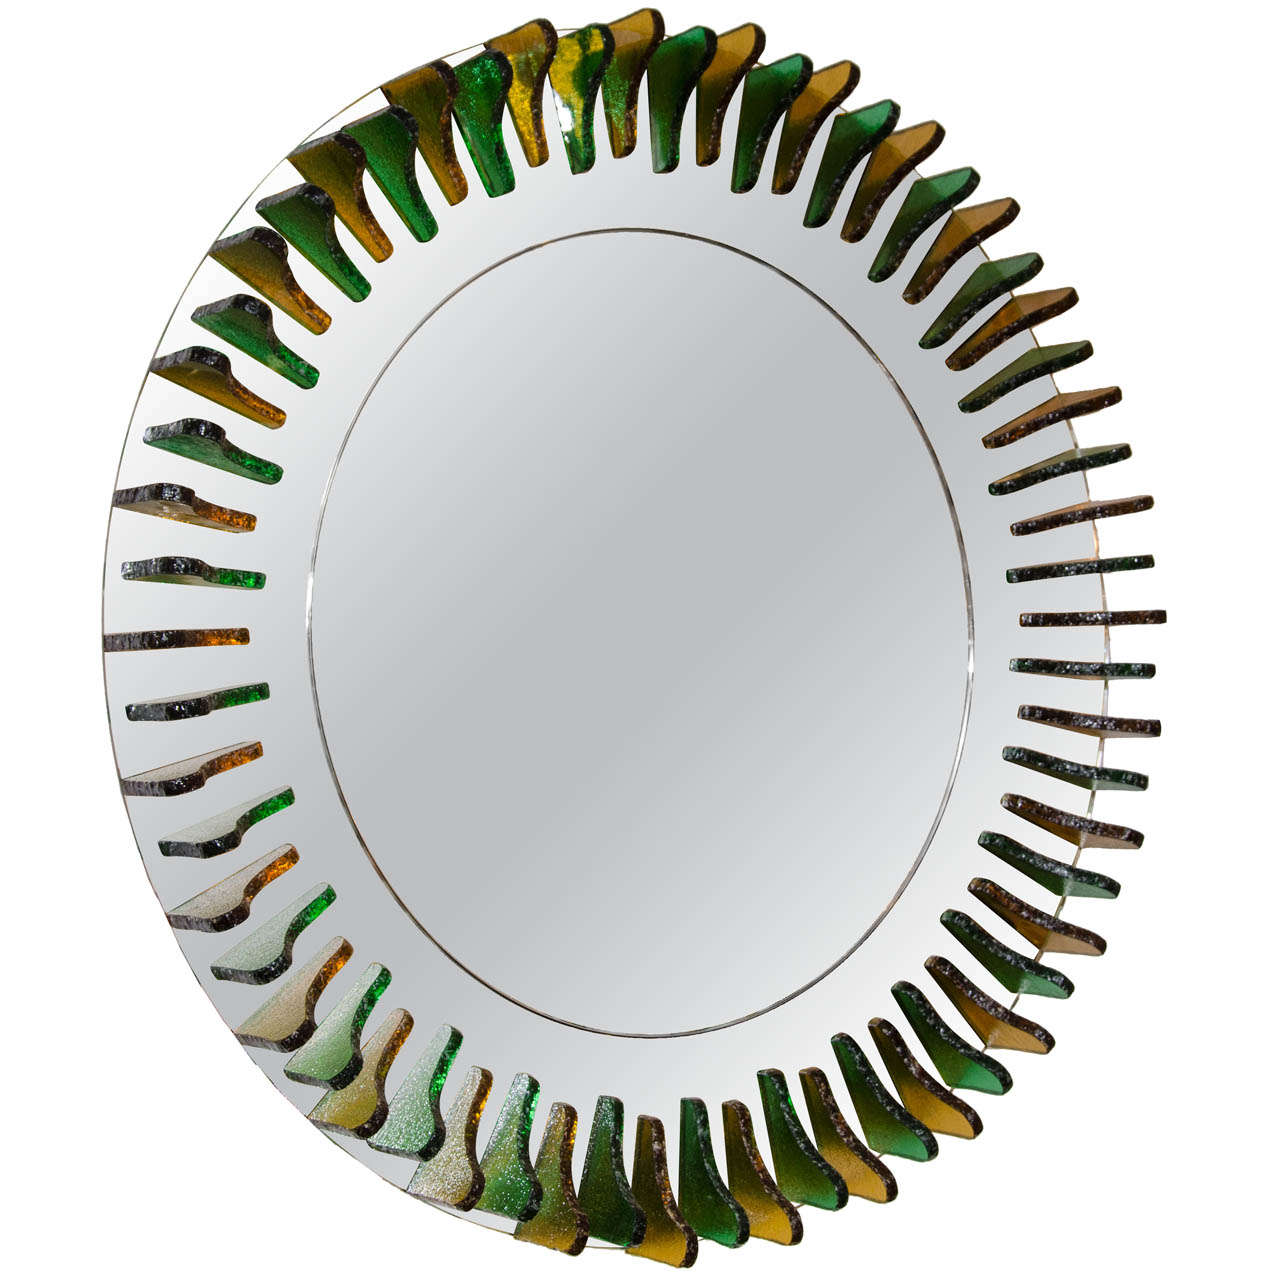 Green and Amber Glass Girasole Style Mirror 1